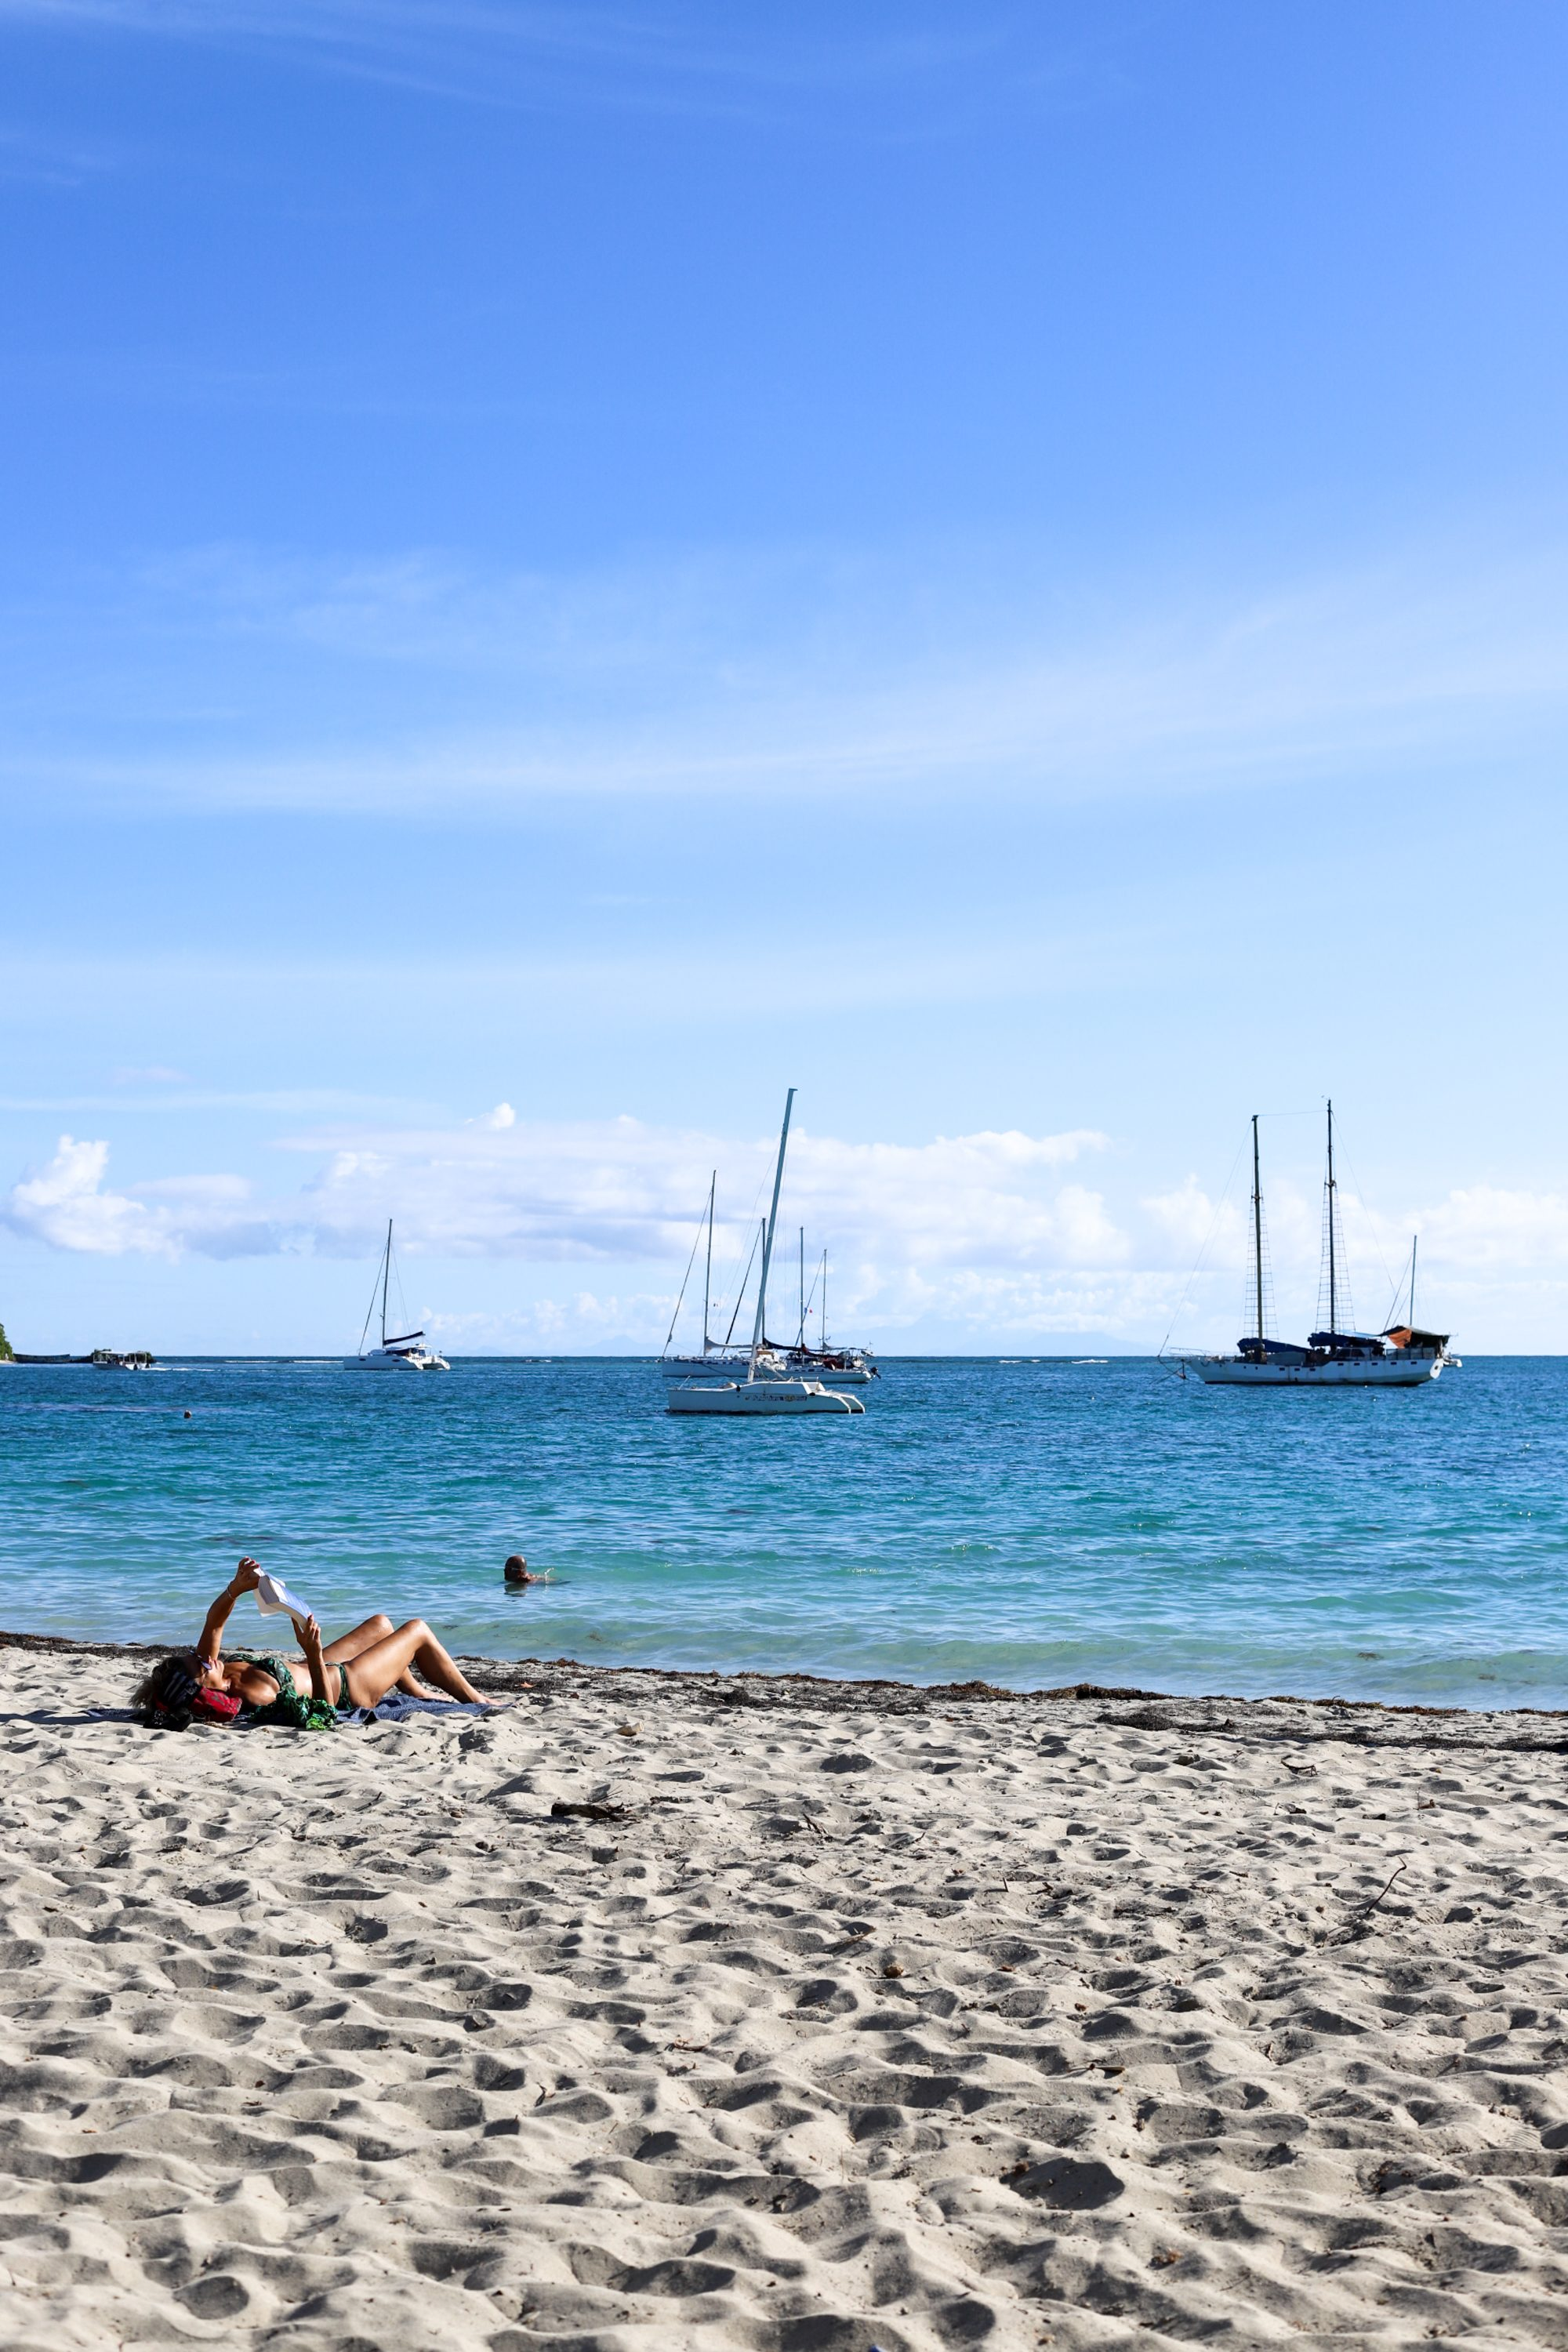 french caribbean islands, guadeloupe, guadeloupe tourism, where to stay in guadeloupe, what to do in guadeloupe, guadeloupe islands, hidden caribbean gems